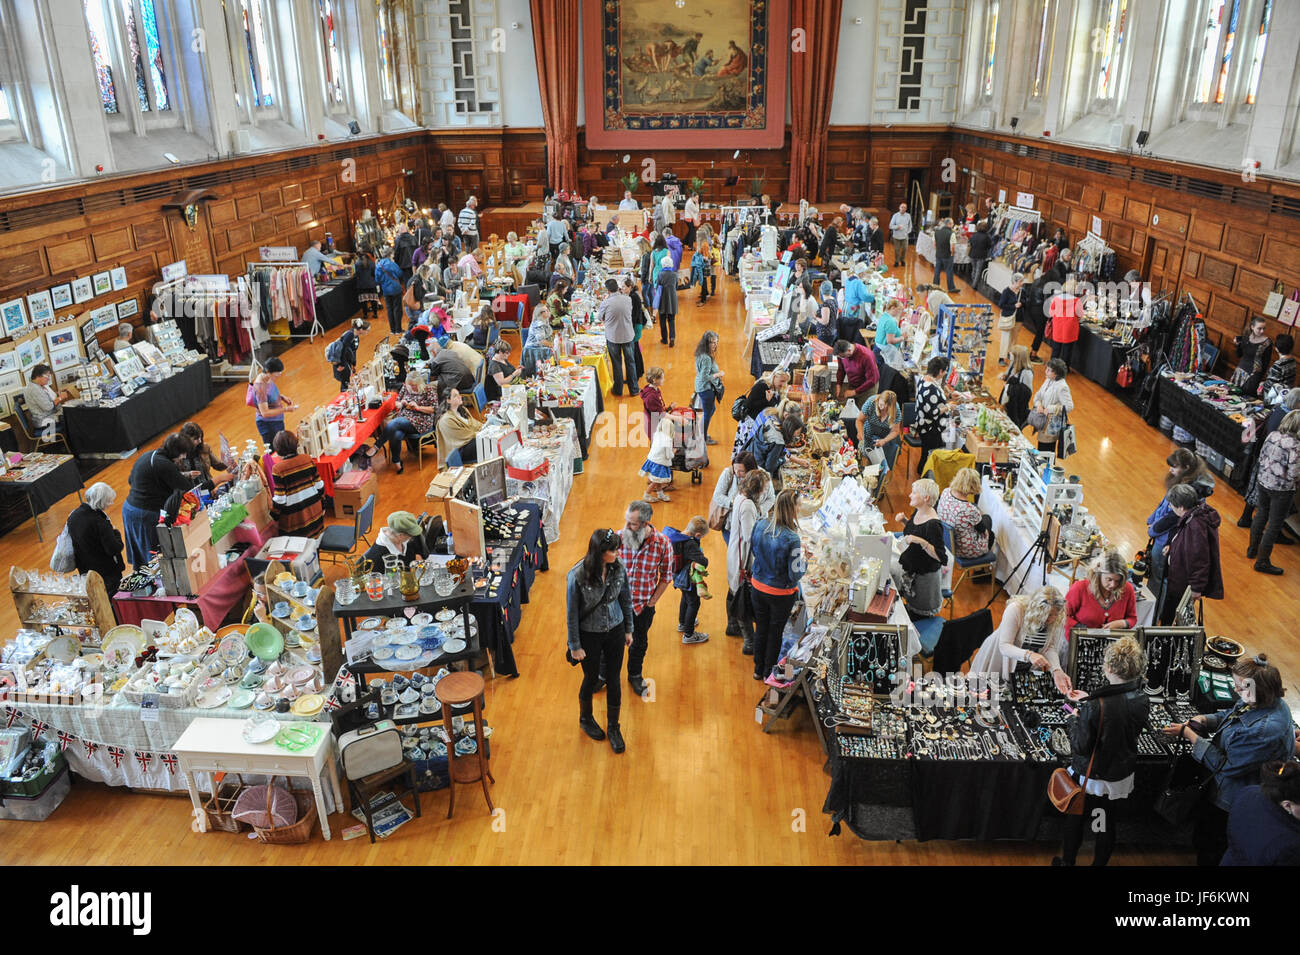 Copyrighted Image by Paul Slater/PSI -  Interior of Plymouth Guild Hall, Plymouth, Devon. - Stock Image